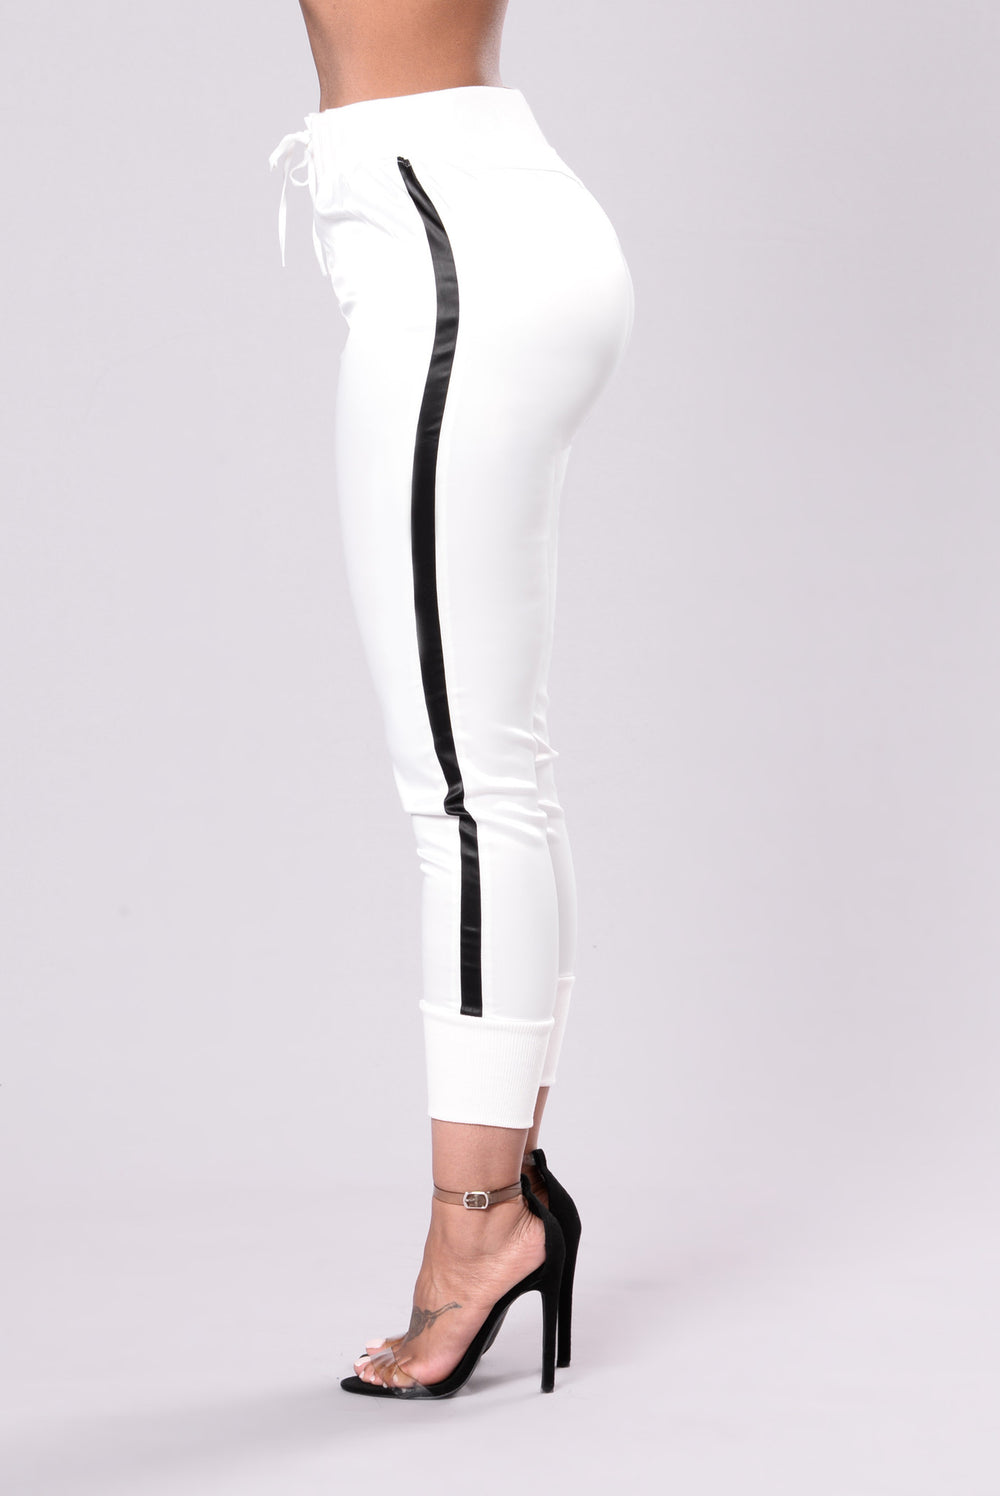 Keep You In Line Pants - White